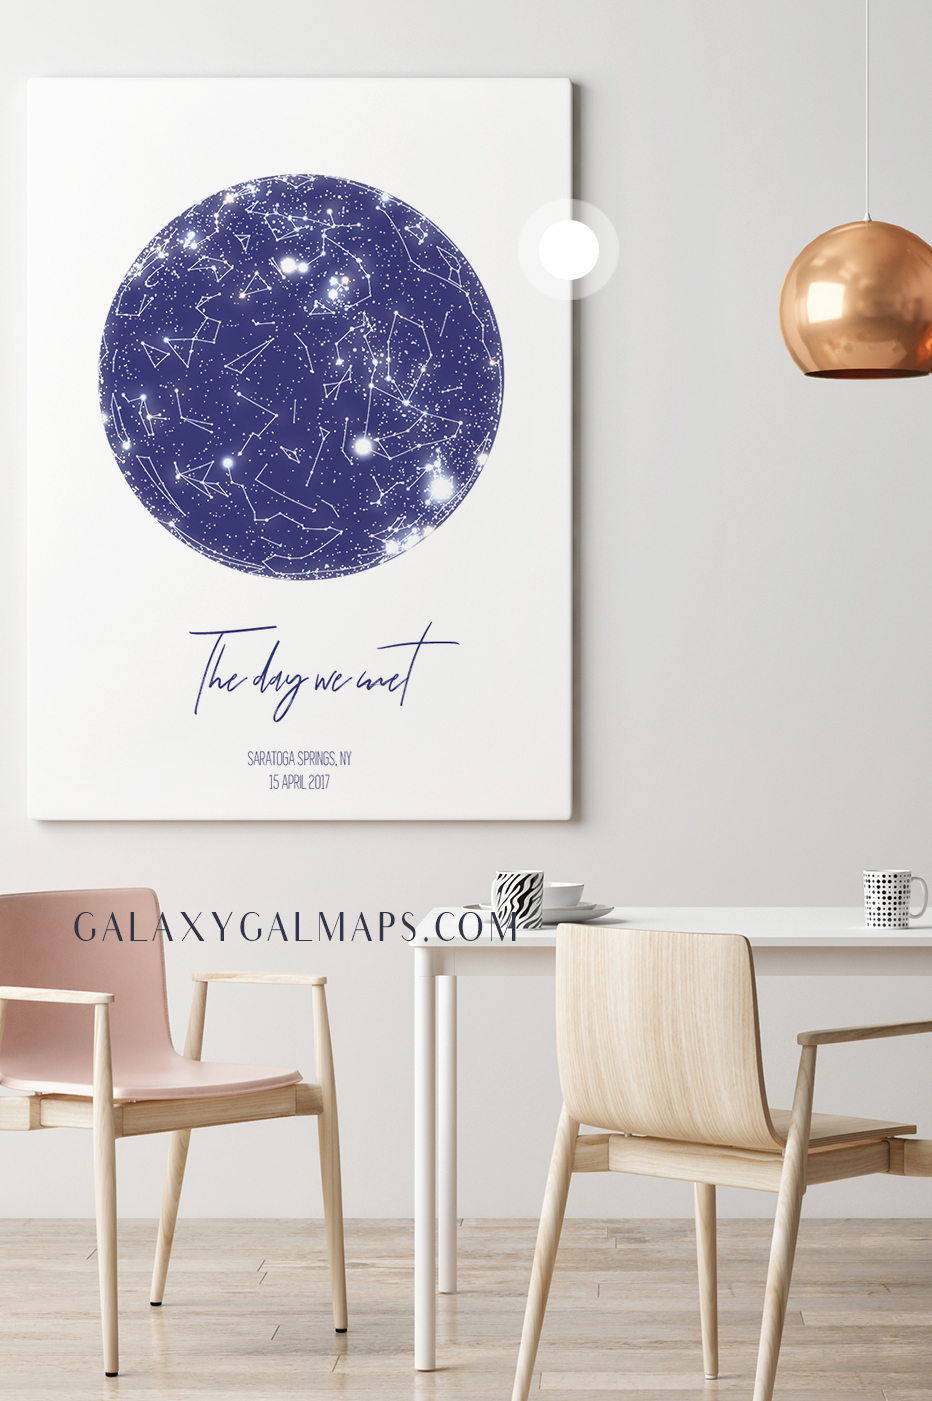 Star Map By Date And Location.Galaxygalmaps